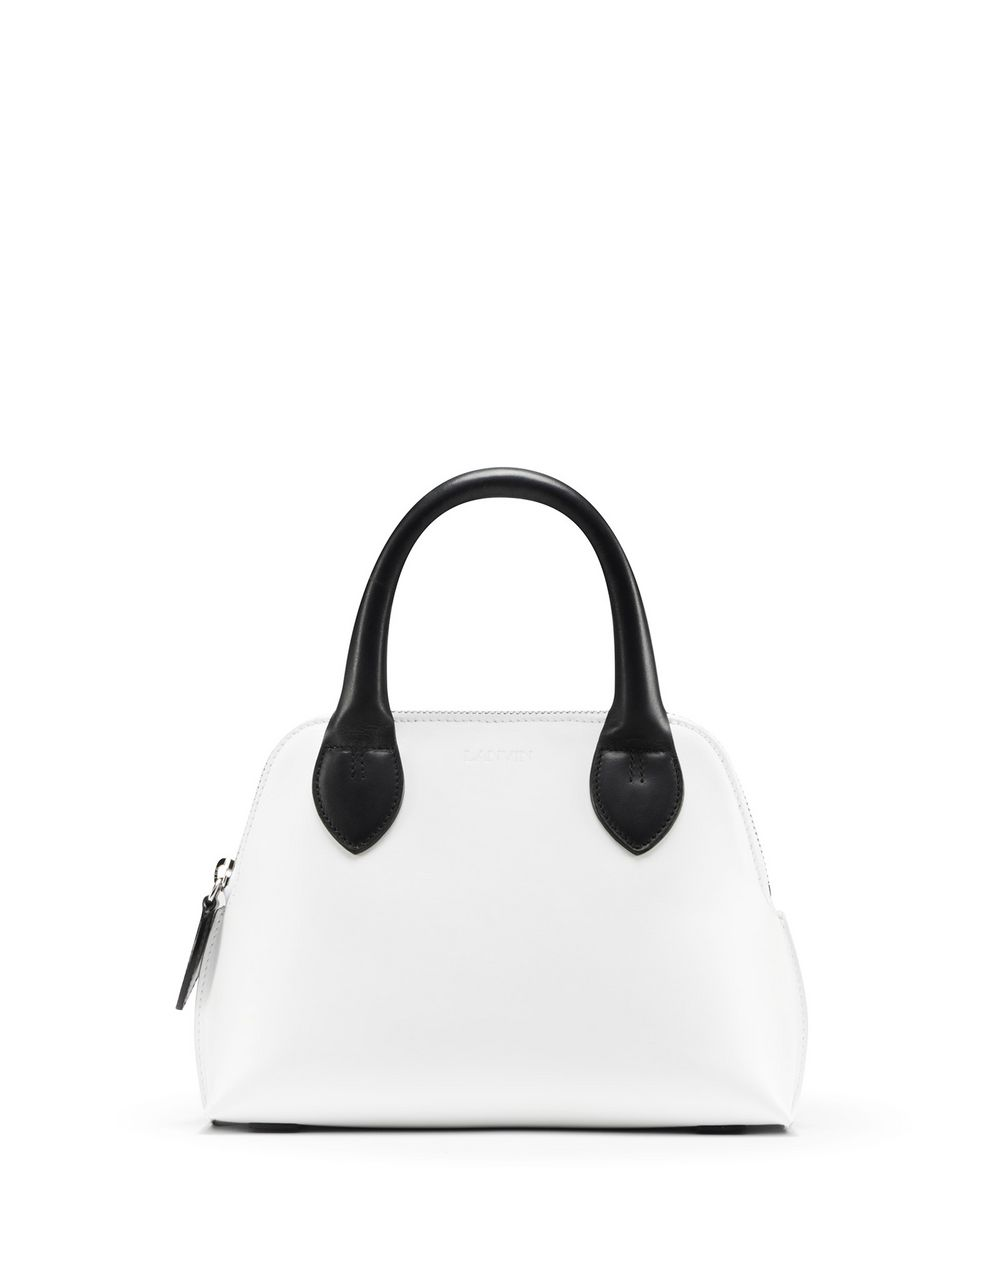 COLOURBLOCK MAGOT BAG - Lanvin